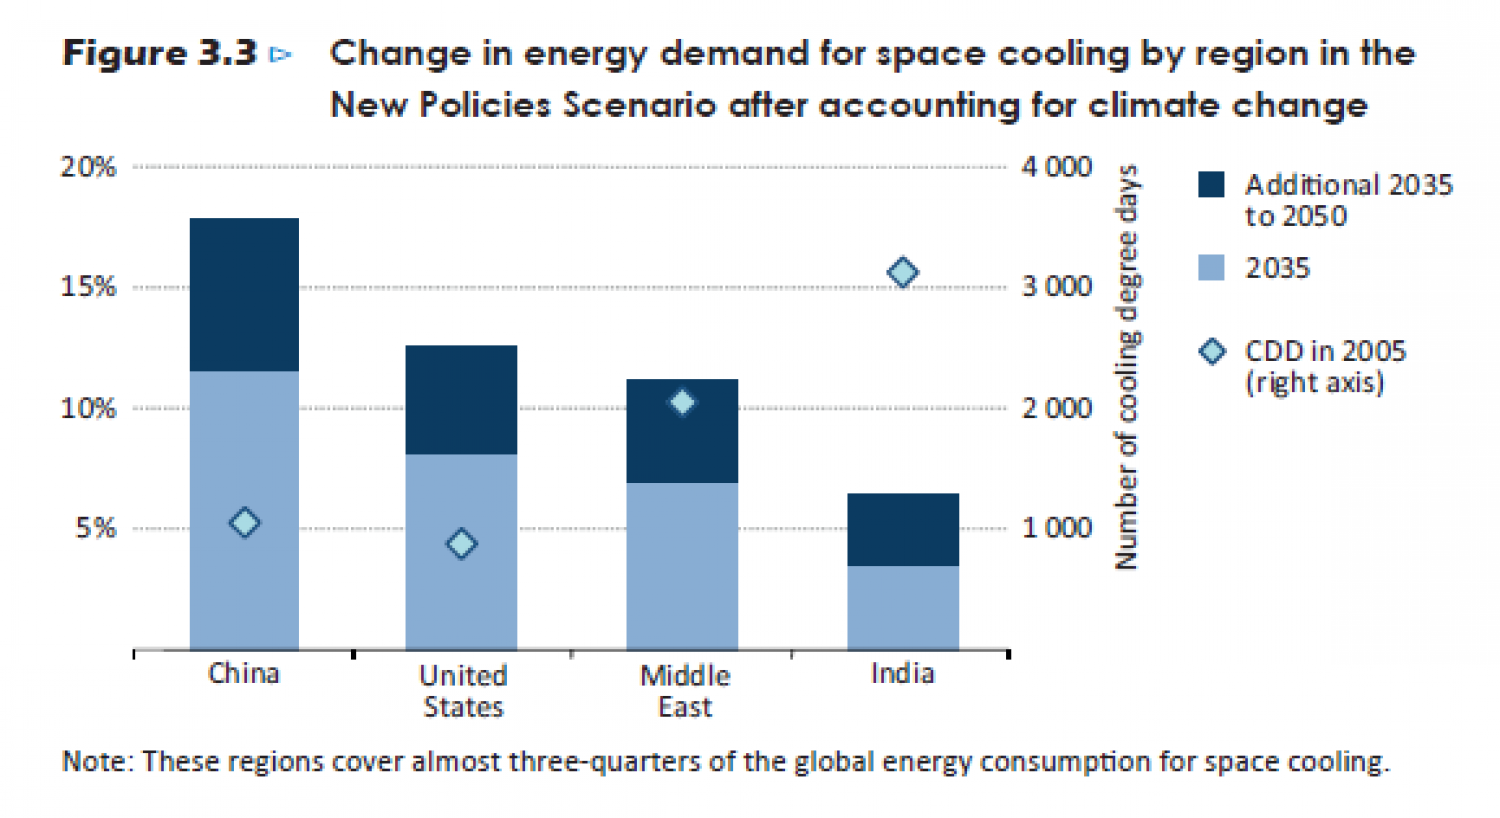 Change in energy demand for space cooling by region in the New Policies Scenario after accounting for climate change Infographic